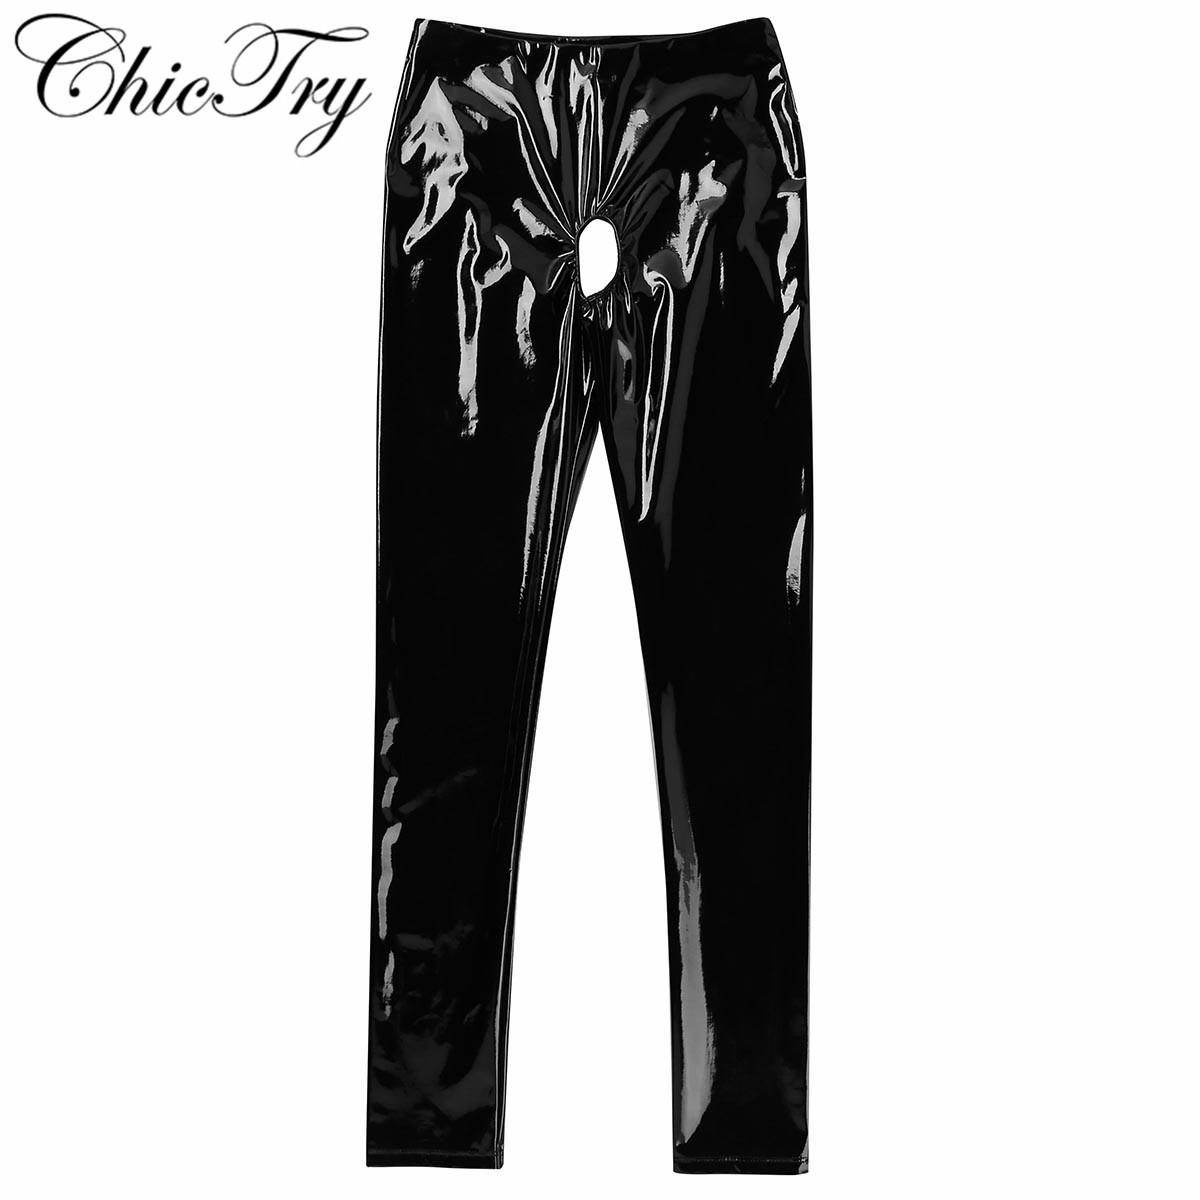 Fashion Women Wet Look Stretchy Pencil Pants Patent Leather Open Crotch And Open Butt Pants Skinny Stretchy Legging Trousers